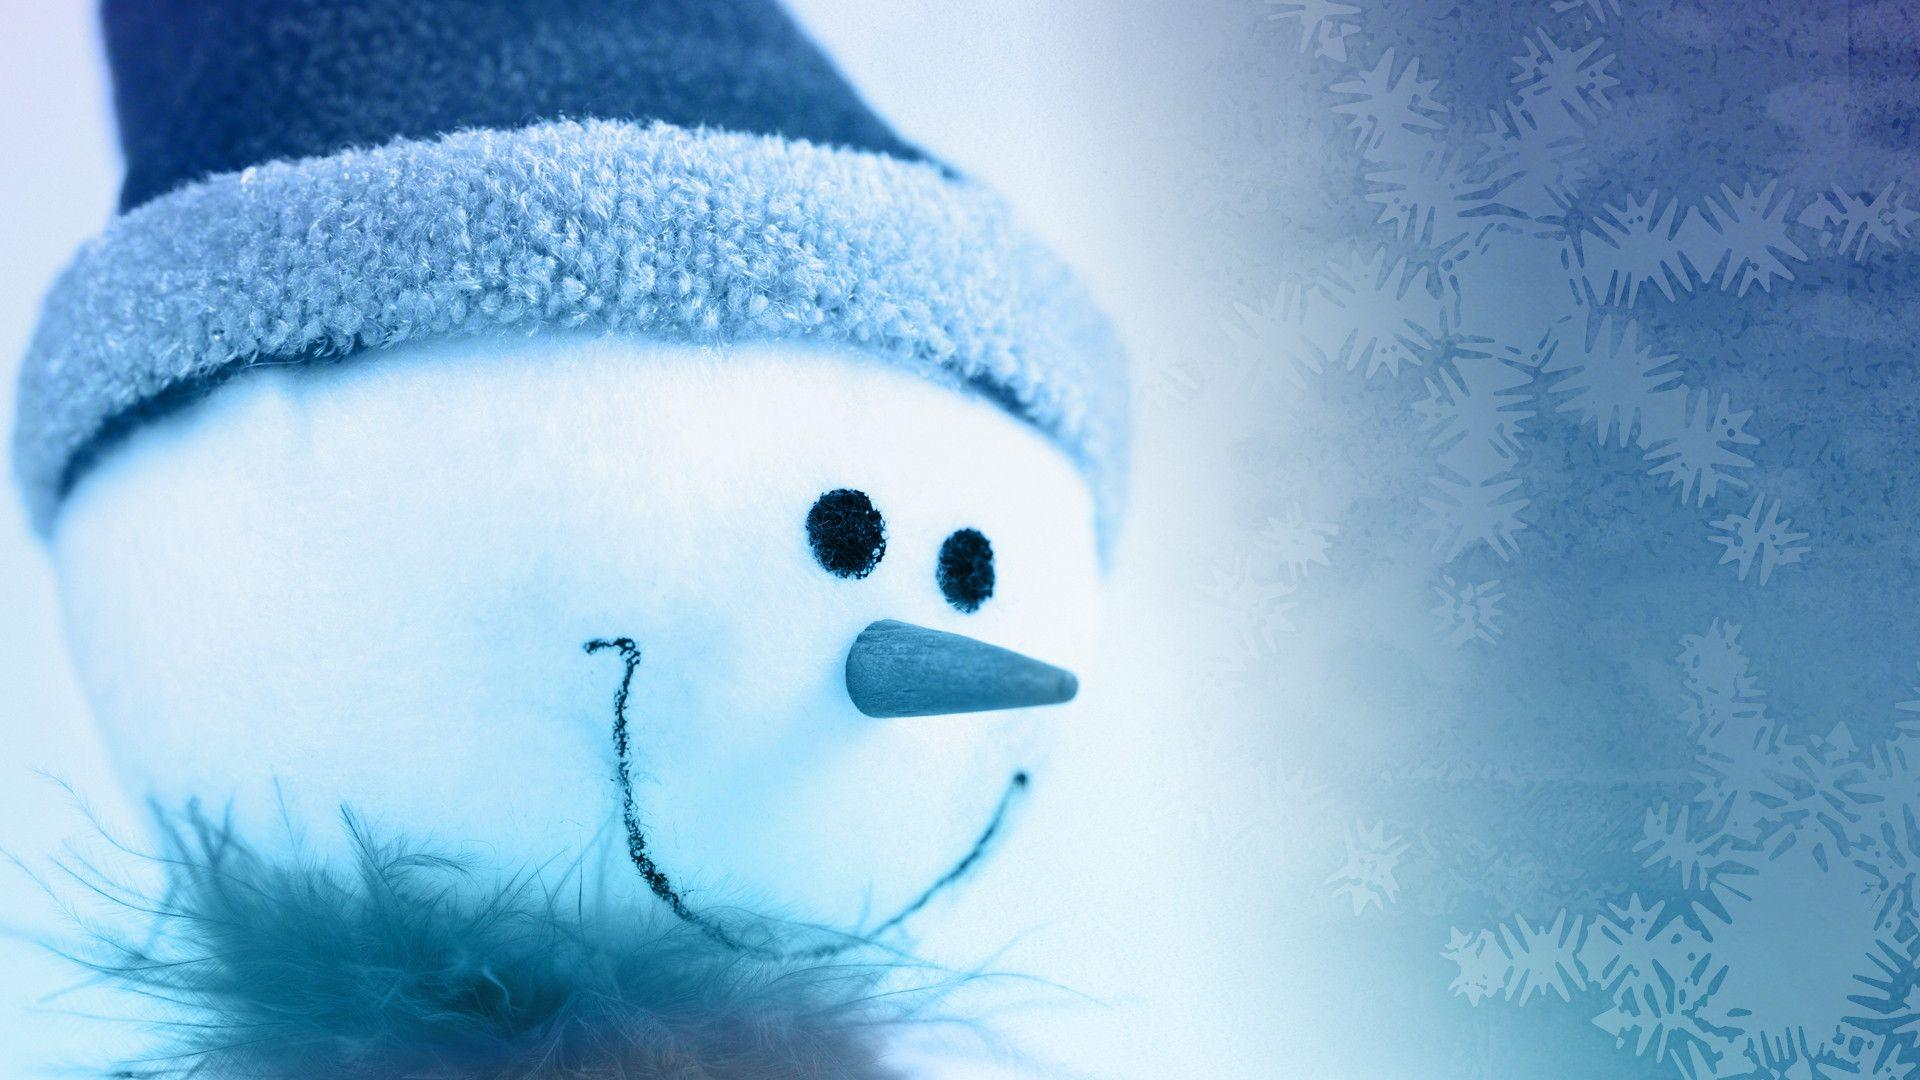 Snowman Desktop Wallpapers 1920x1080